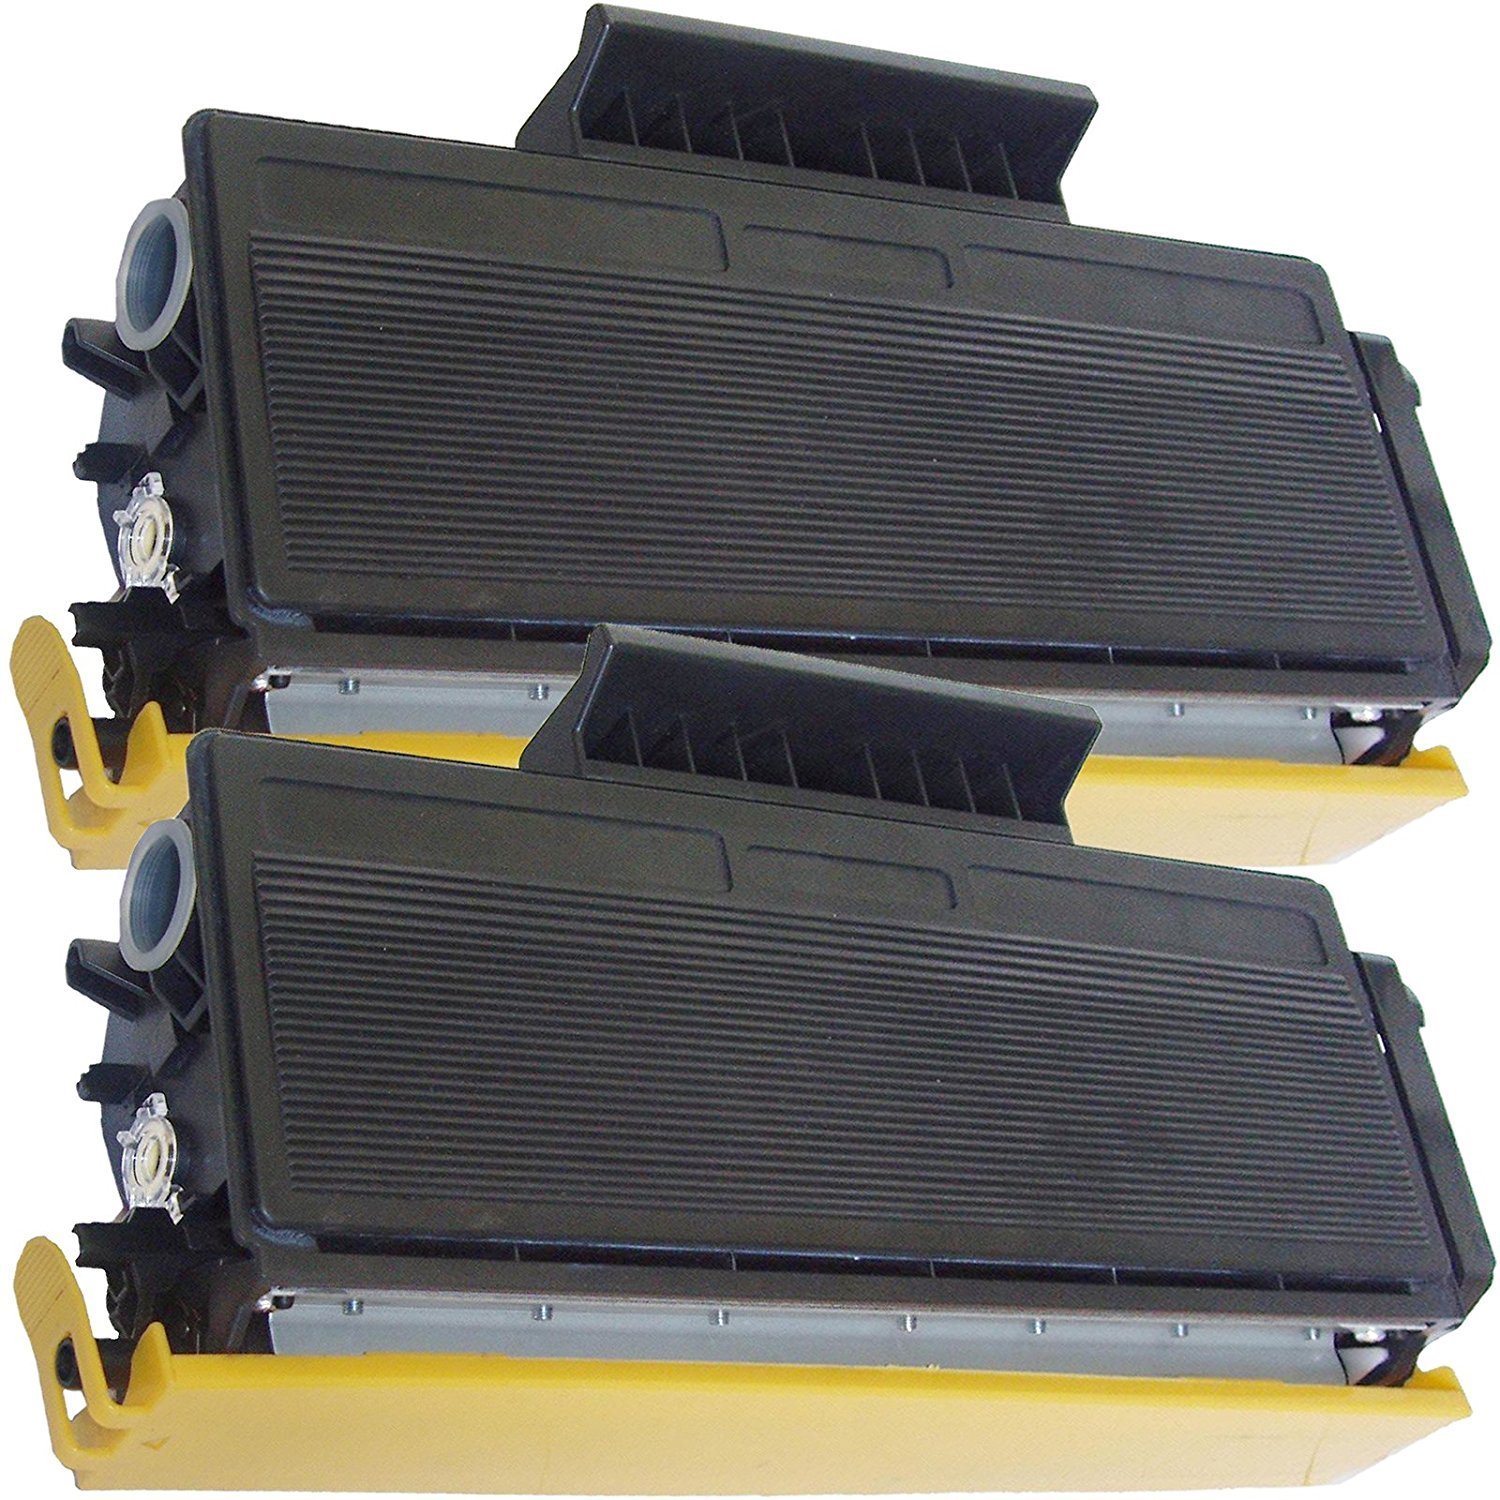 2 Pack - Compatible Black High Yield Toner Cartridge for TN-650 TN-580 (TN650, TN580) TN-620 TN-550 Works With Following Printer Models: Brother DCP-8050DN DCP-8080DN DCP-8085DN HL-5340D HL-5350DN HL-5350DNLT HL-5370 HL-5380DN MFC-8370 MFC-8480DN MFC-8680D